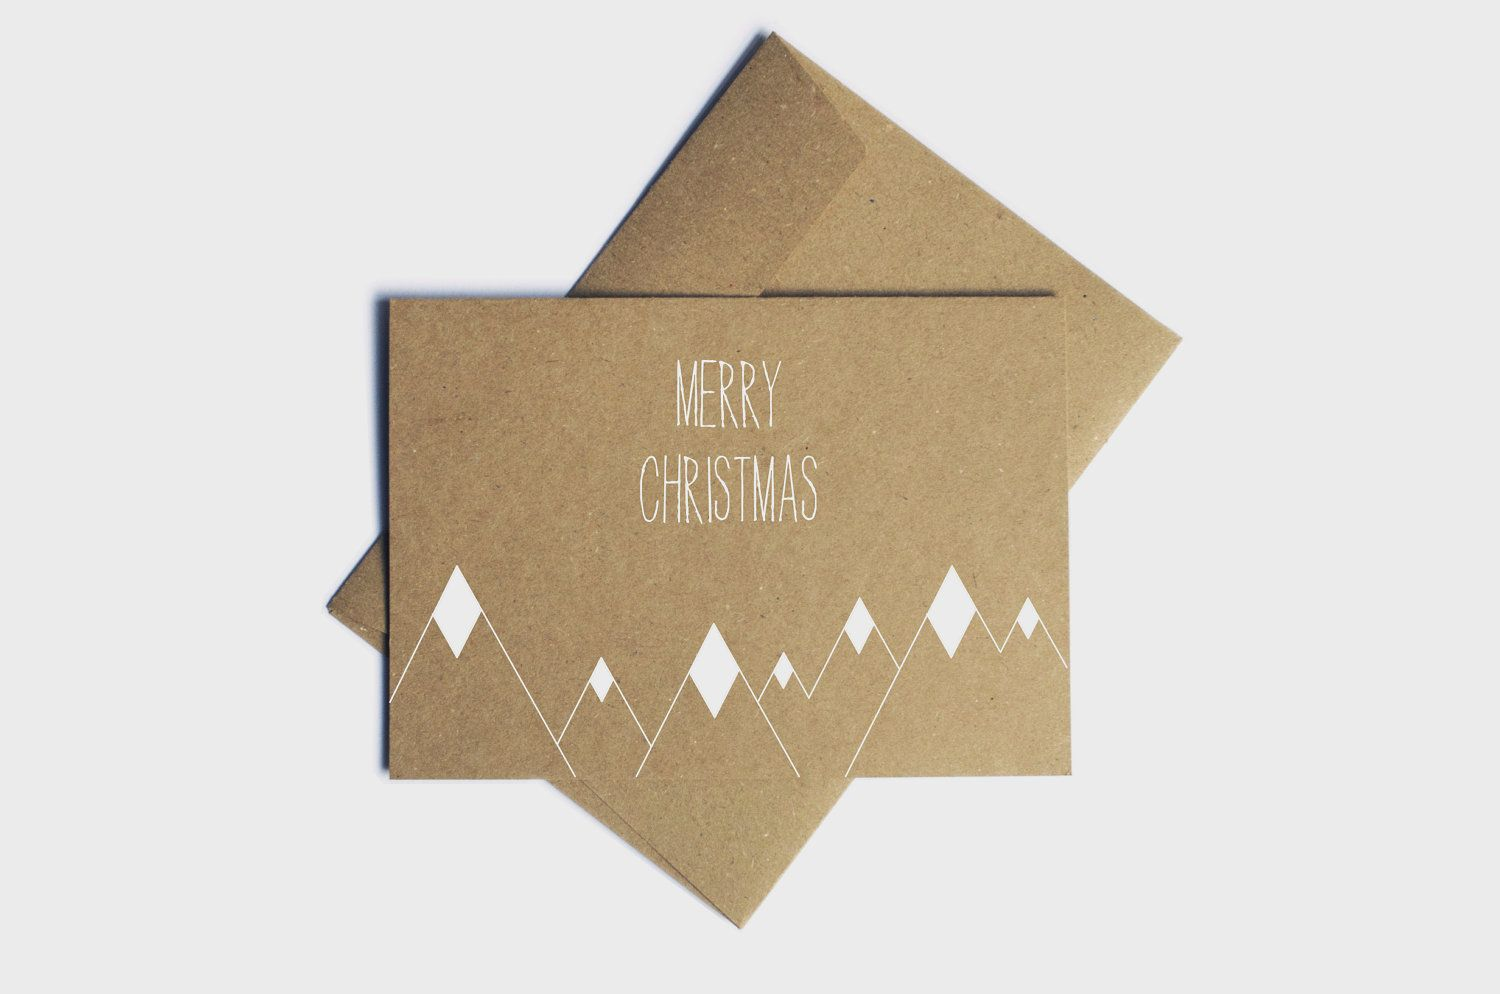 Minimalist Christmas Card Minimalist Christmas Card Christmas Cards Creative Christmas Cards